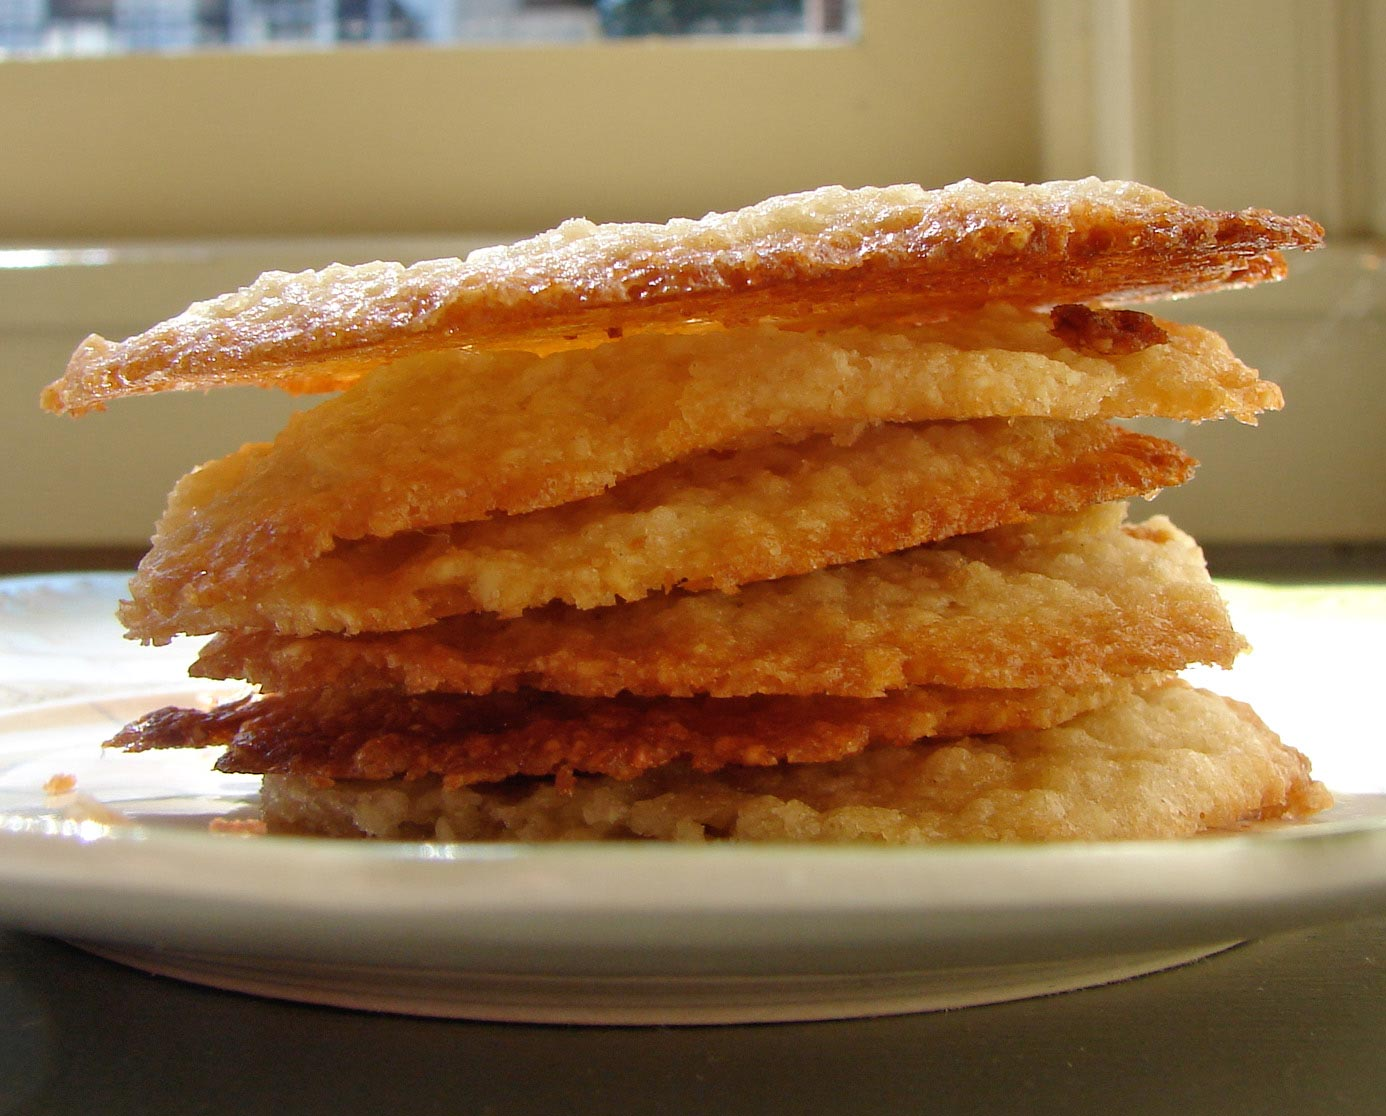 Crispy lacy almond cookies out of the ordinary